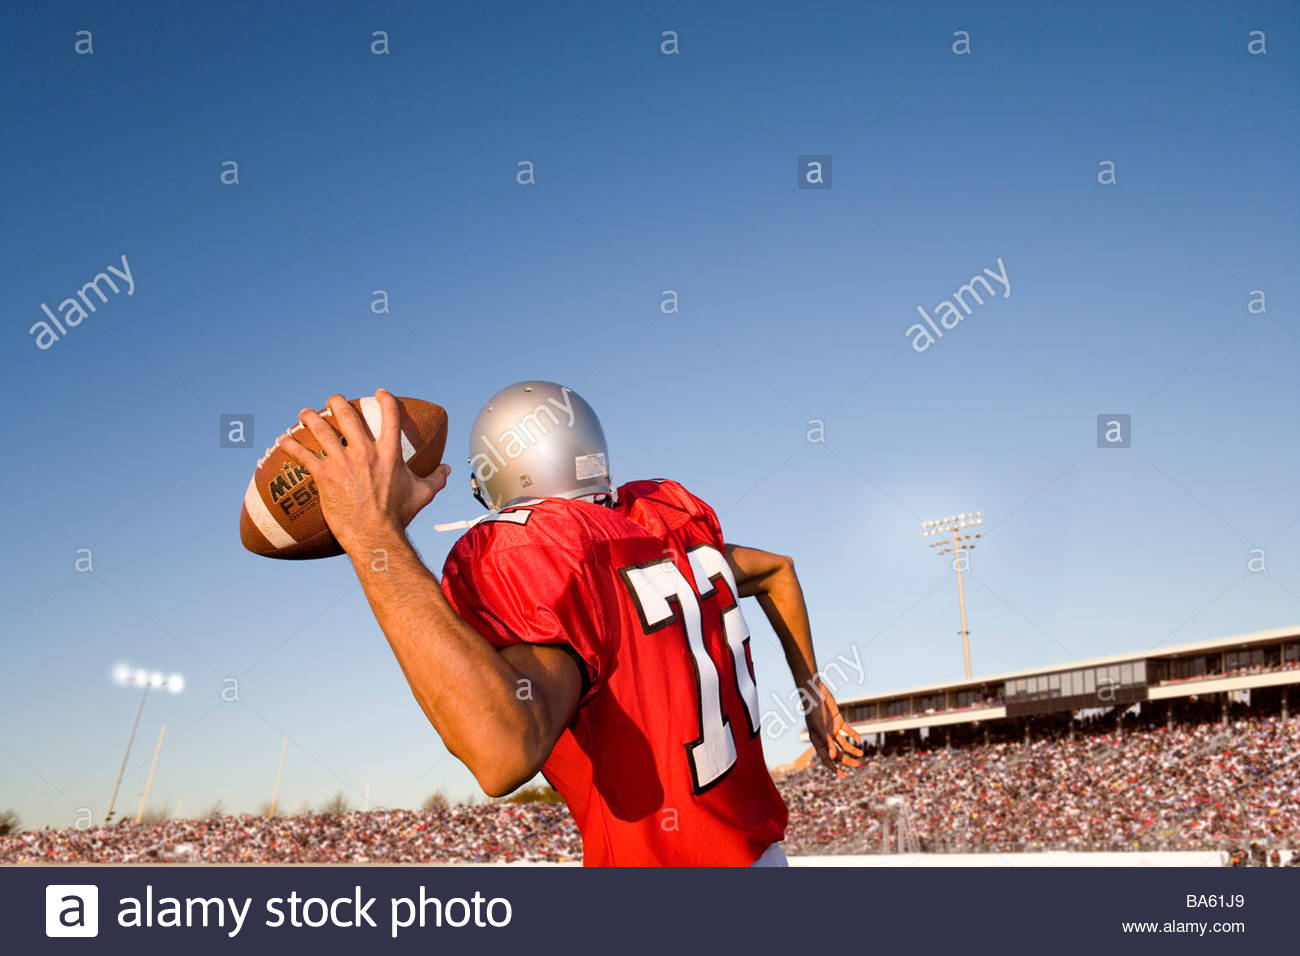 Quarterback throwing football - Stock Image